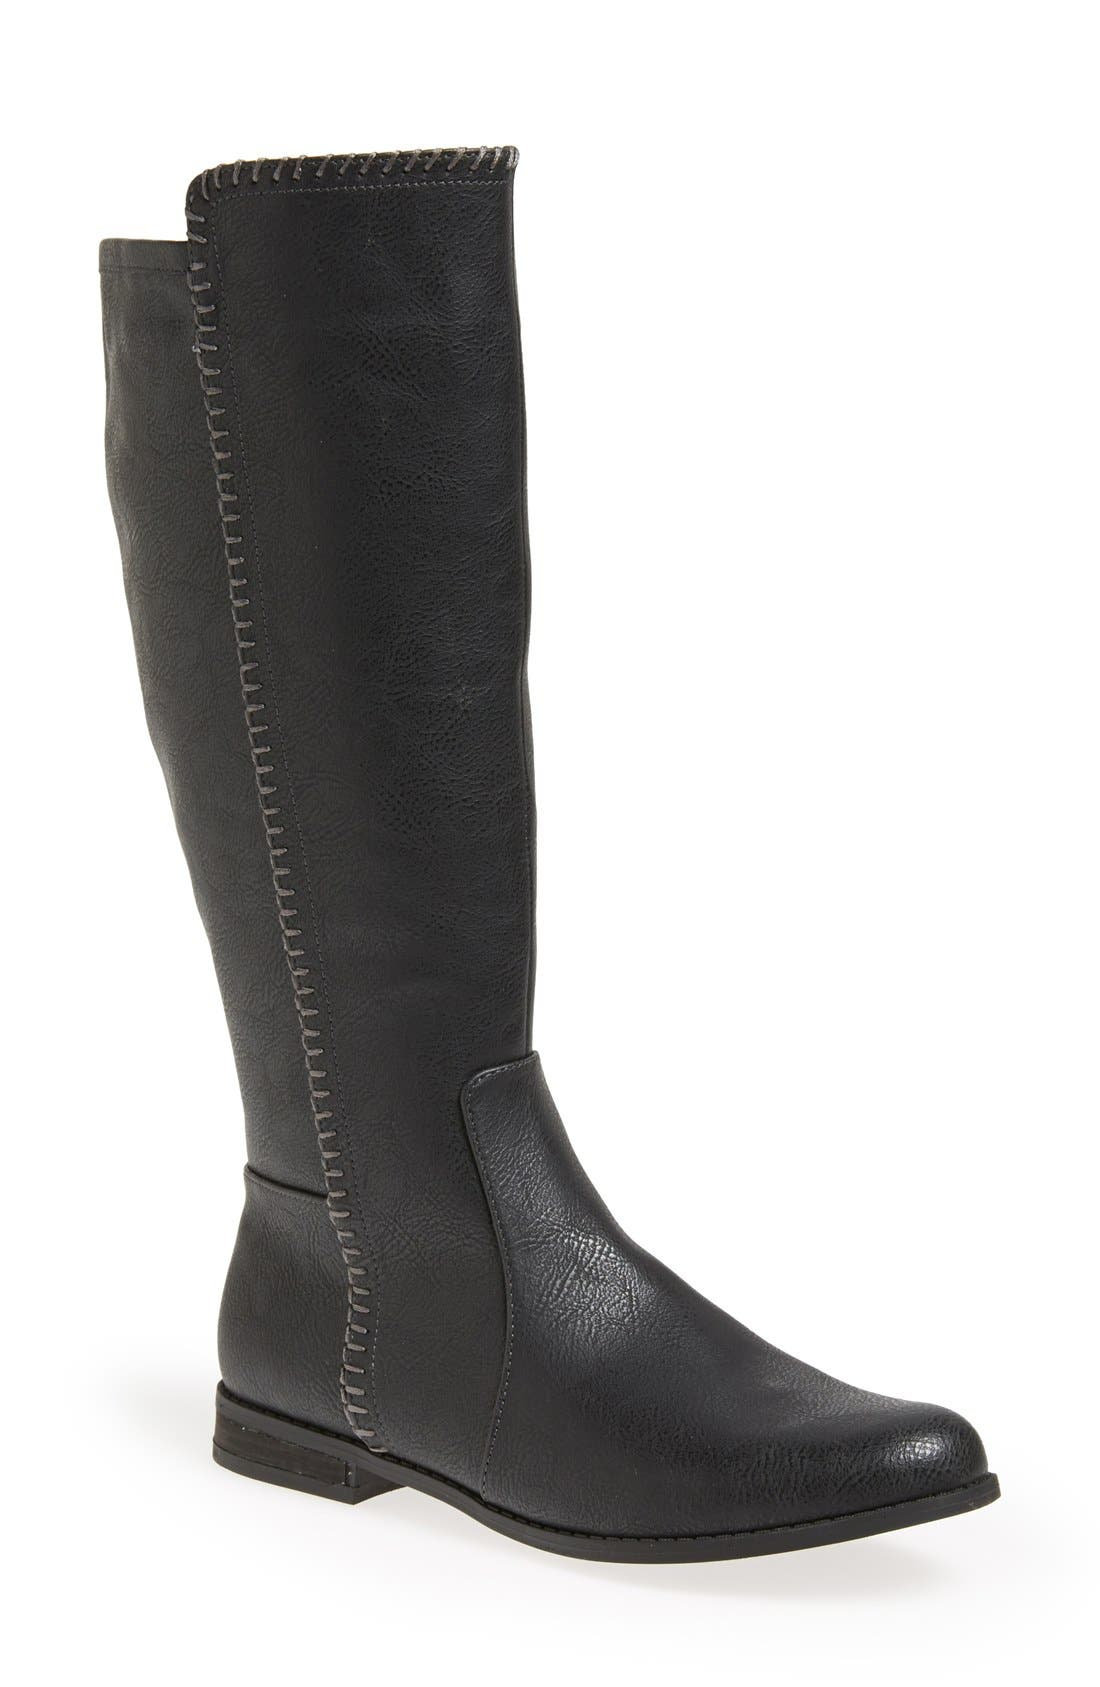 Alternate Image 1 Selected - Dr. Scholl's 'Confess' Riding Boot (Women) (Wide Calf)